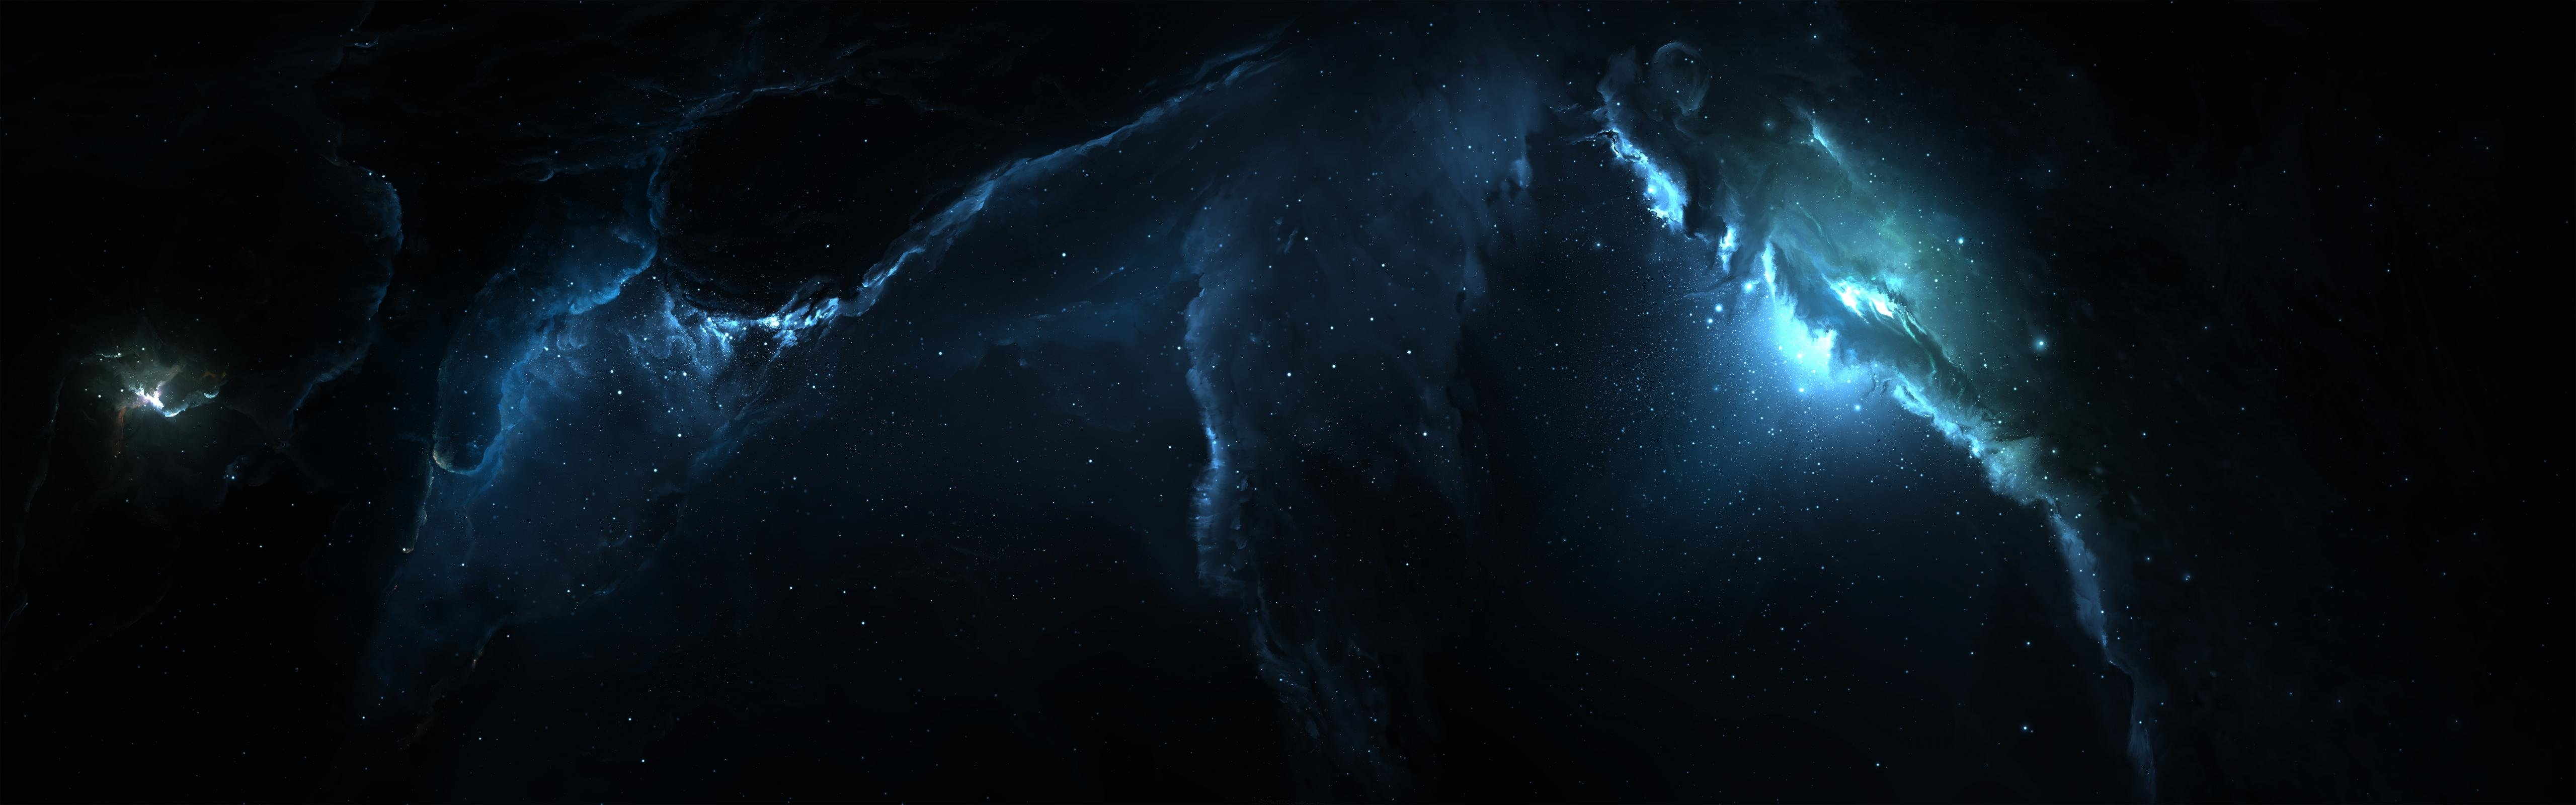 Free download Nebula wallpaper ID:91521 dual monitor 5120x1600 for desktop